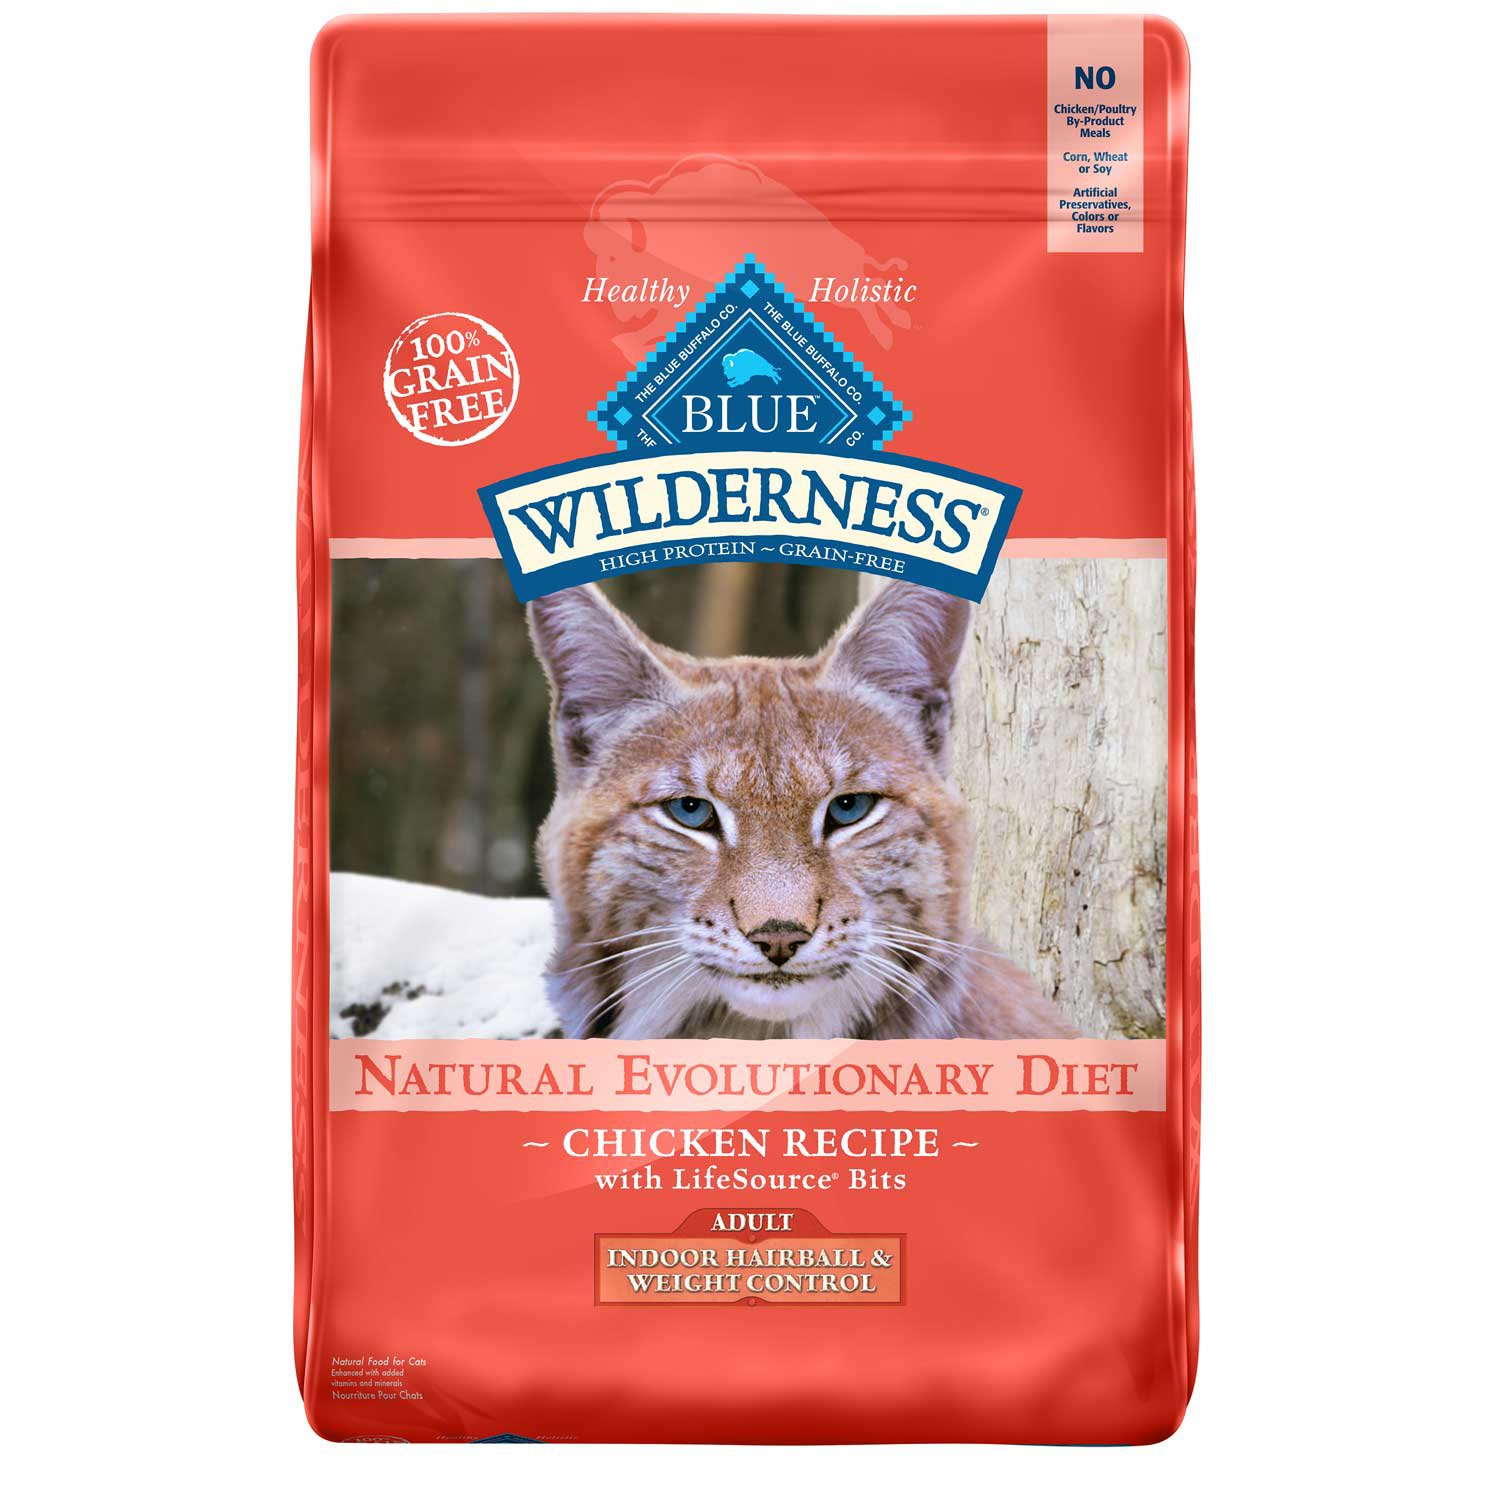 Blue Buffalo Blue Wilderness Adult Indoor Hairball & Weight Control Dry Cat Food | Petco at Petco in Braselton, GA | Tuggl